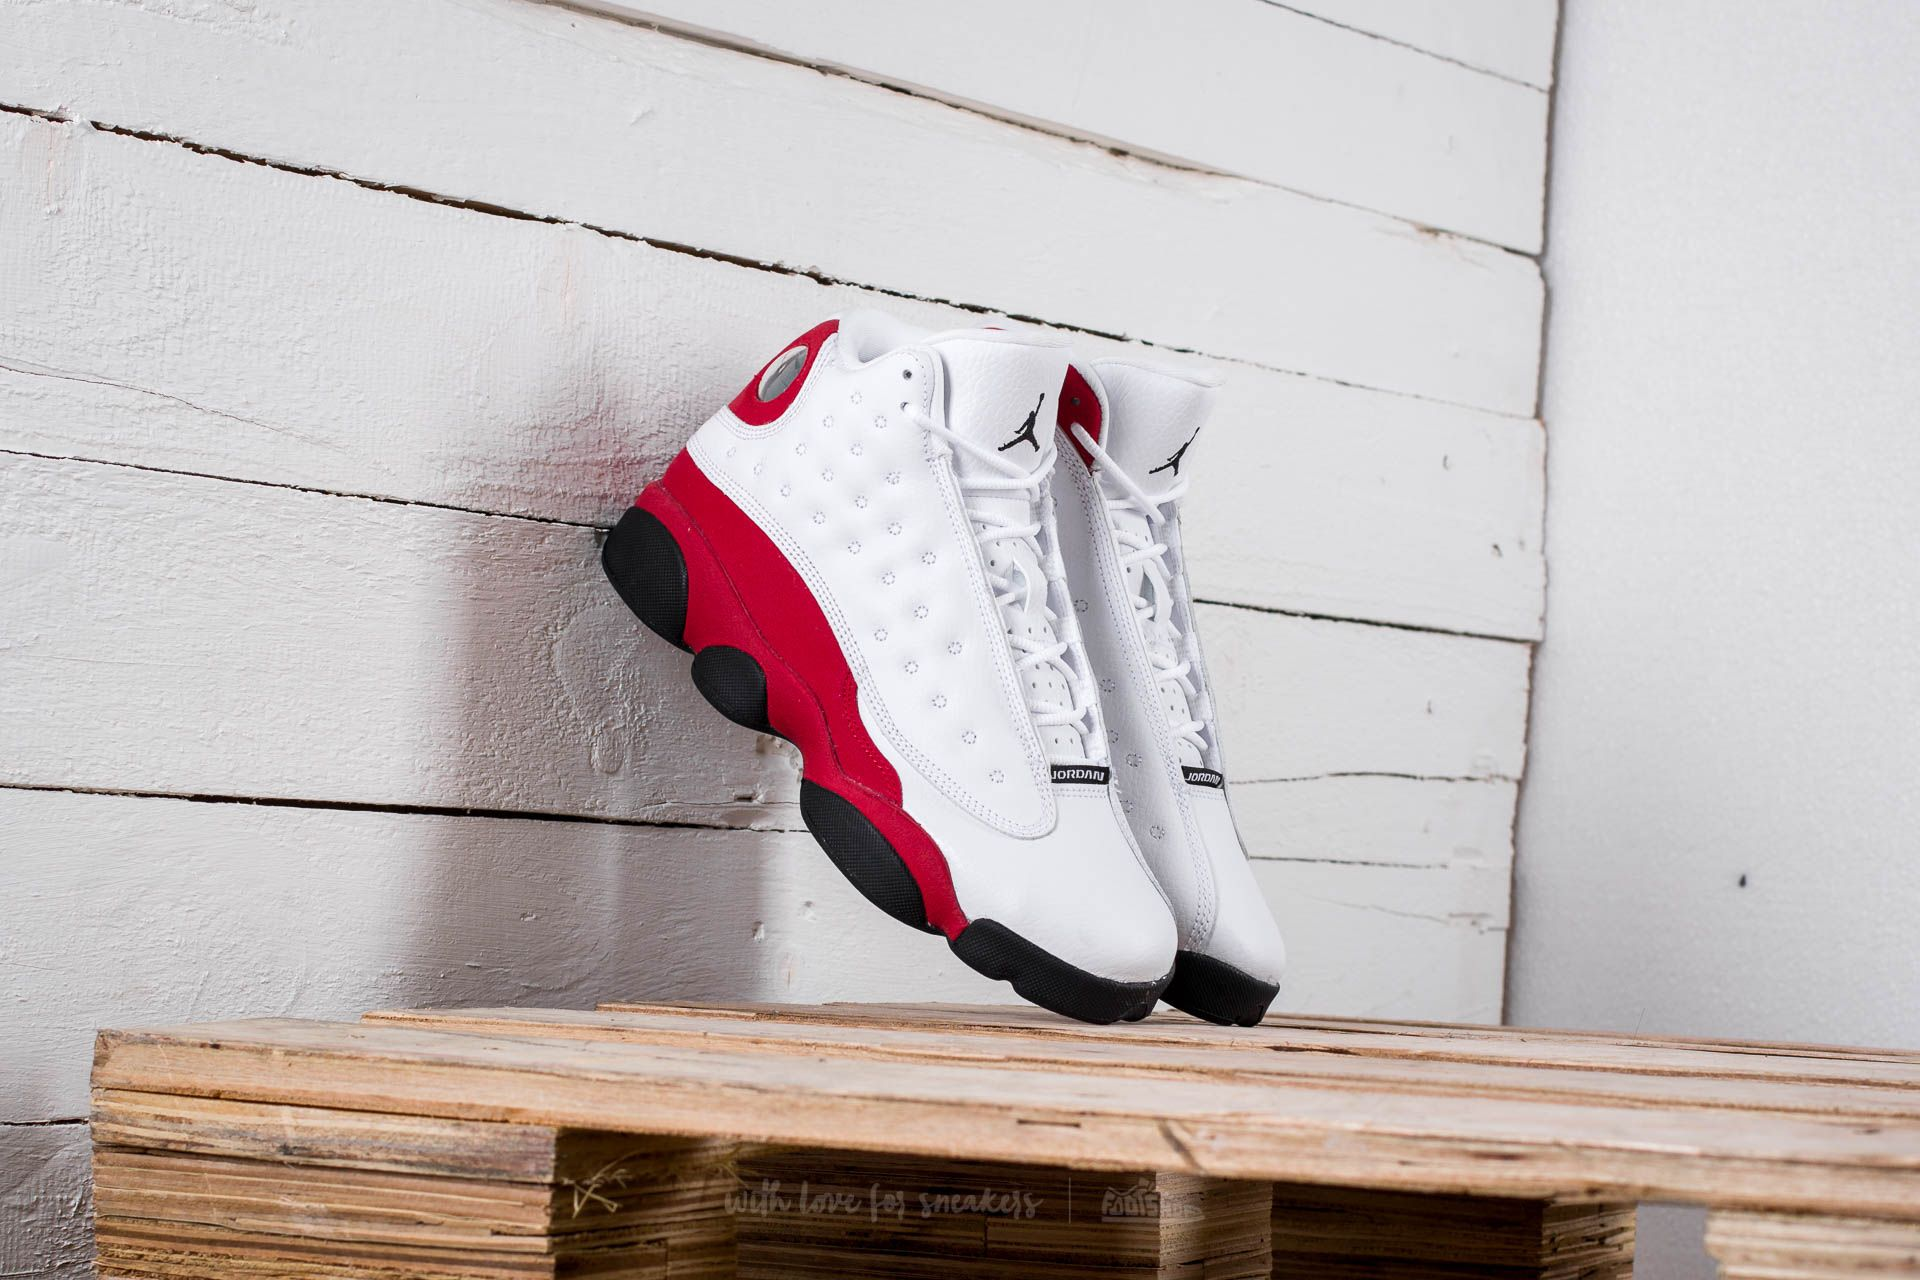 Air Jordan 13 Retro BG White/ Black-True Red-Cool Grey - 14248